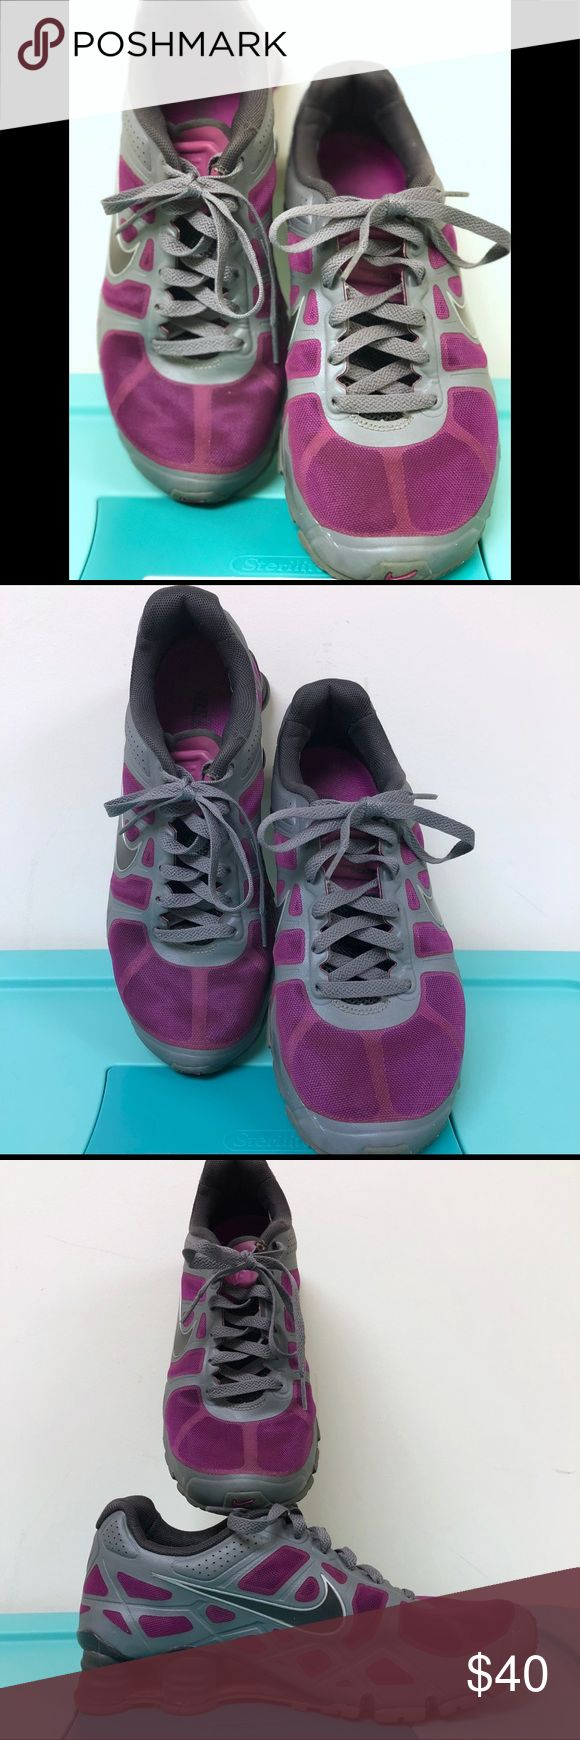 Women's Nike Shocks running sneaker UEC size 9 Women's Nike Shocks running sneaker UEC size 9 runs on the smaller size. I always get 9 in Nike's to leave room for inserts  In used, although not often, excellent condition. These are so comfortable Nike Shoes Athletic Shoes